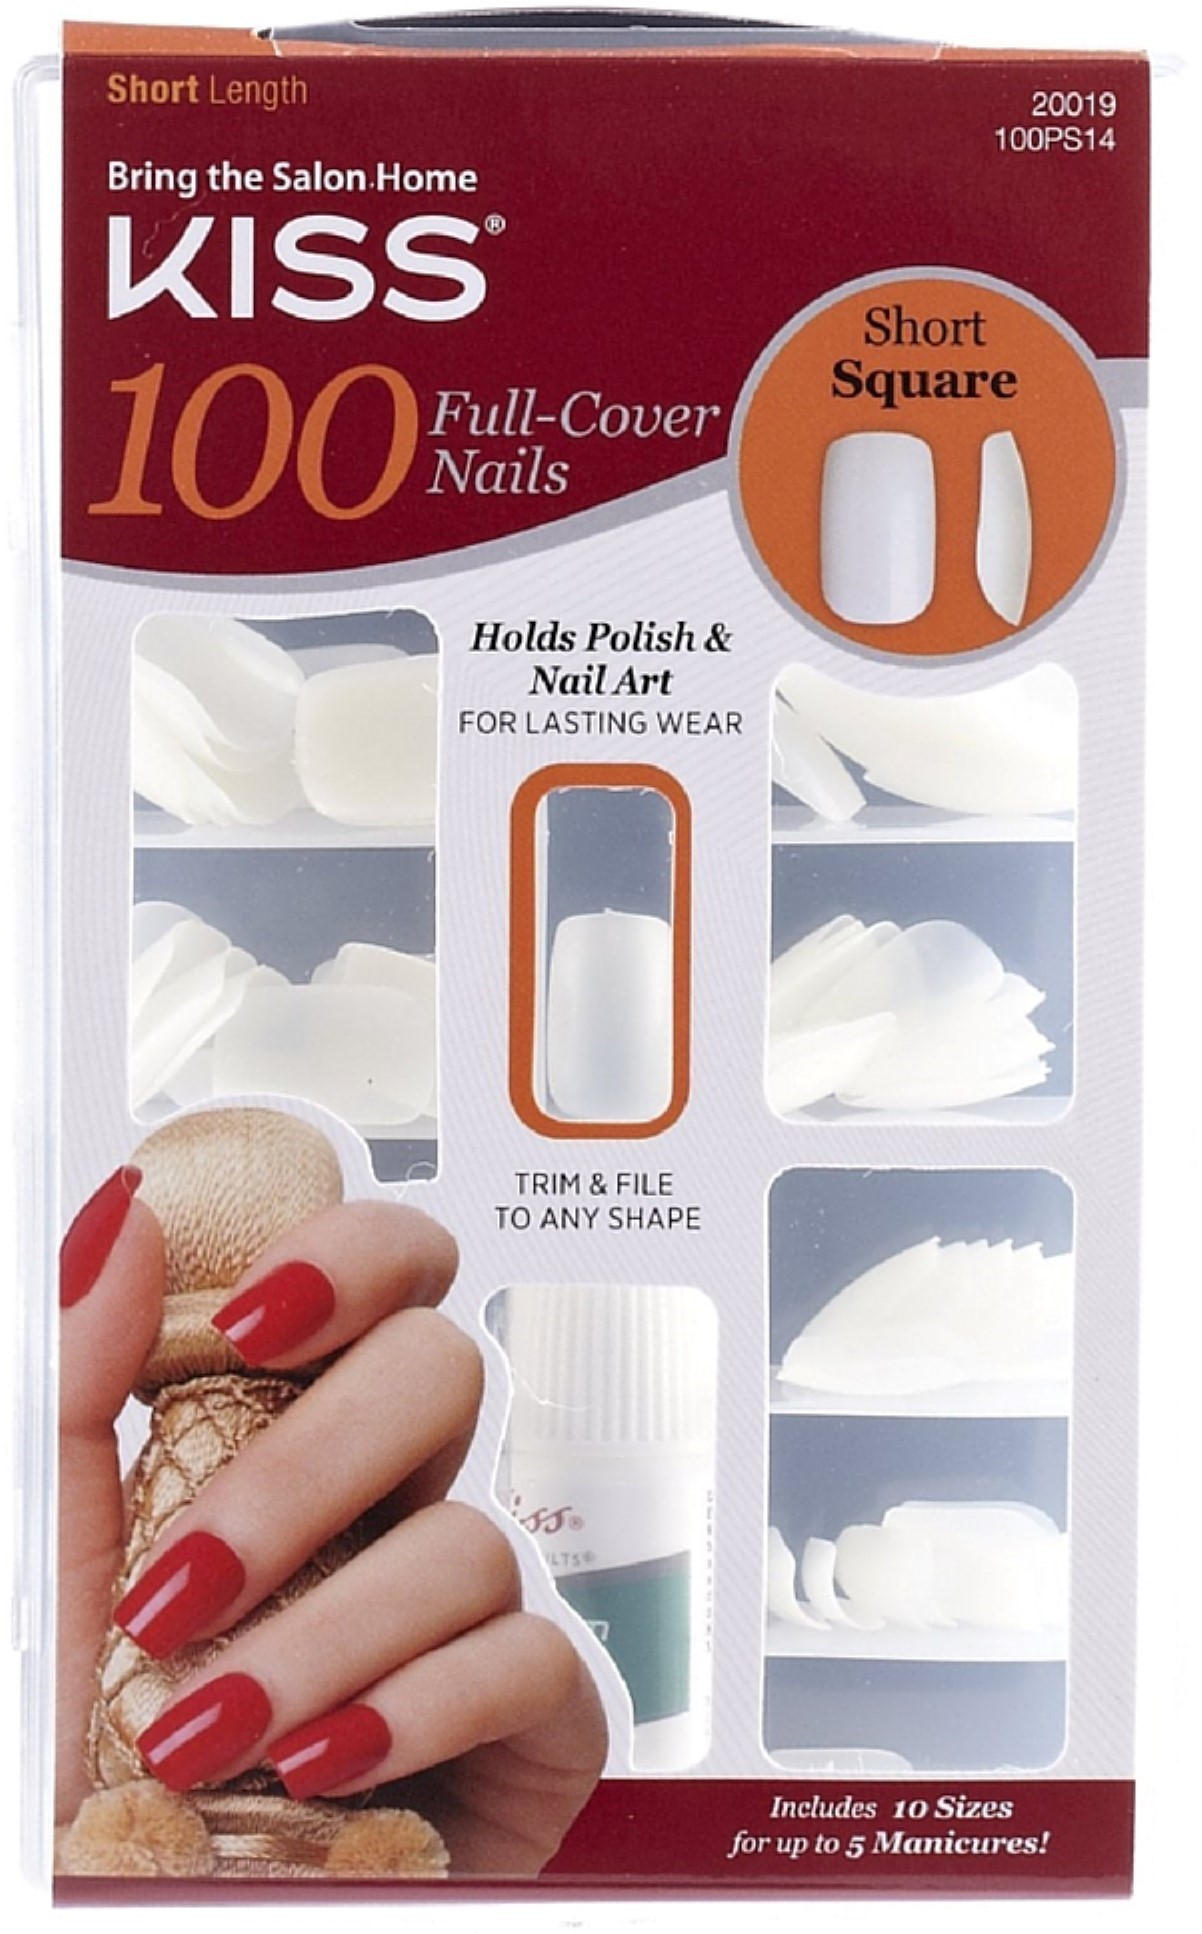 KISS 100 Full Cover Nails Kit, Short Length, Square - Walmart.com